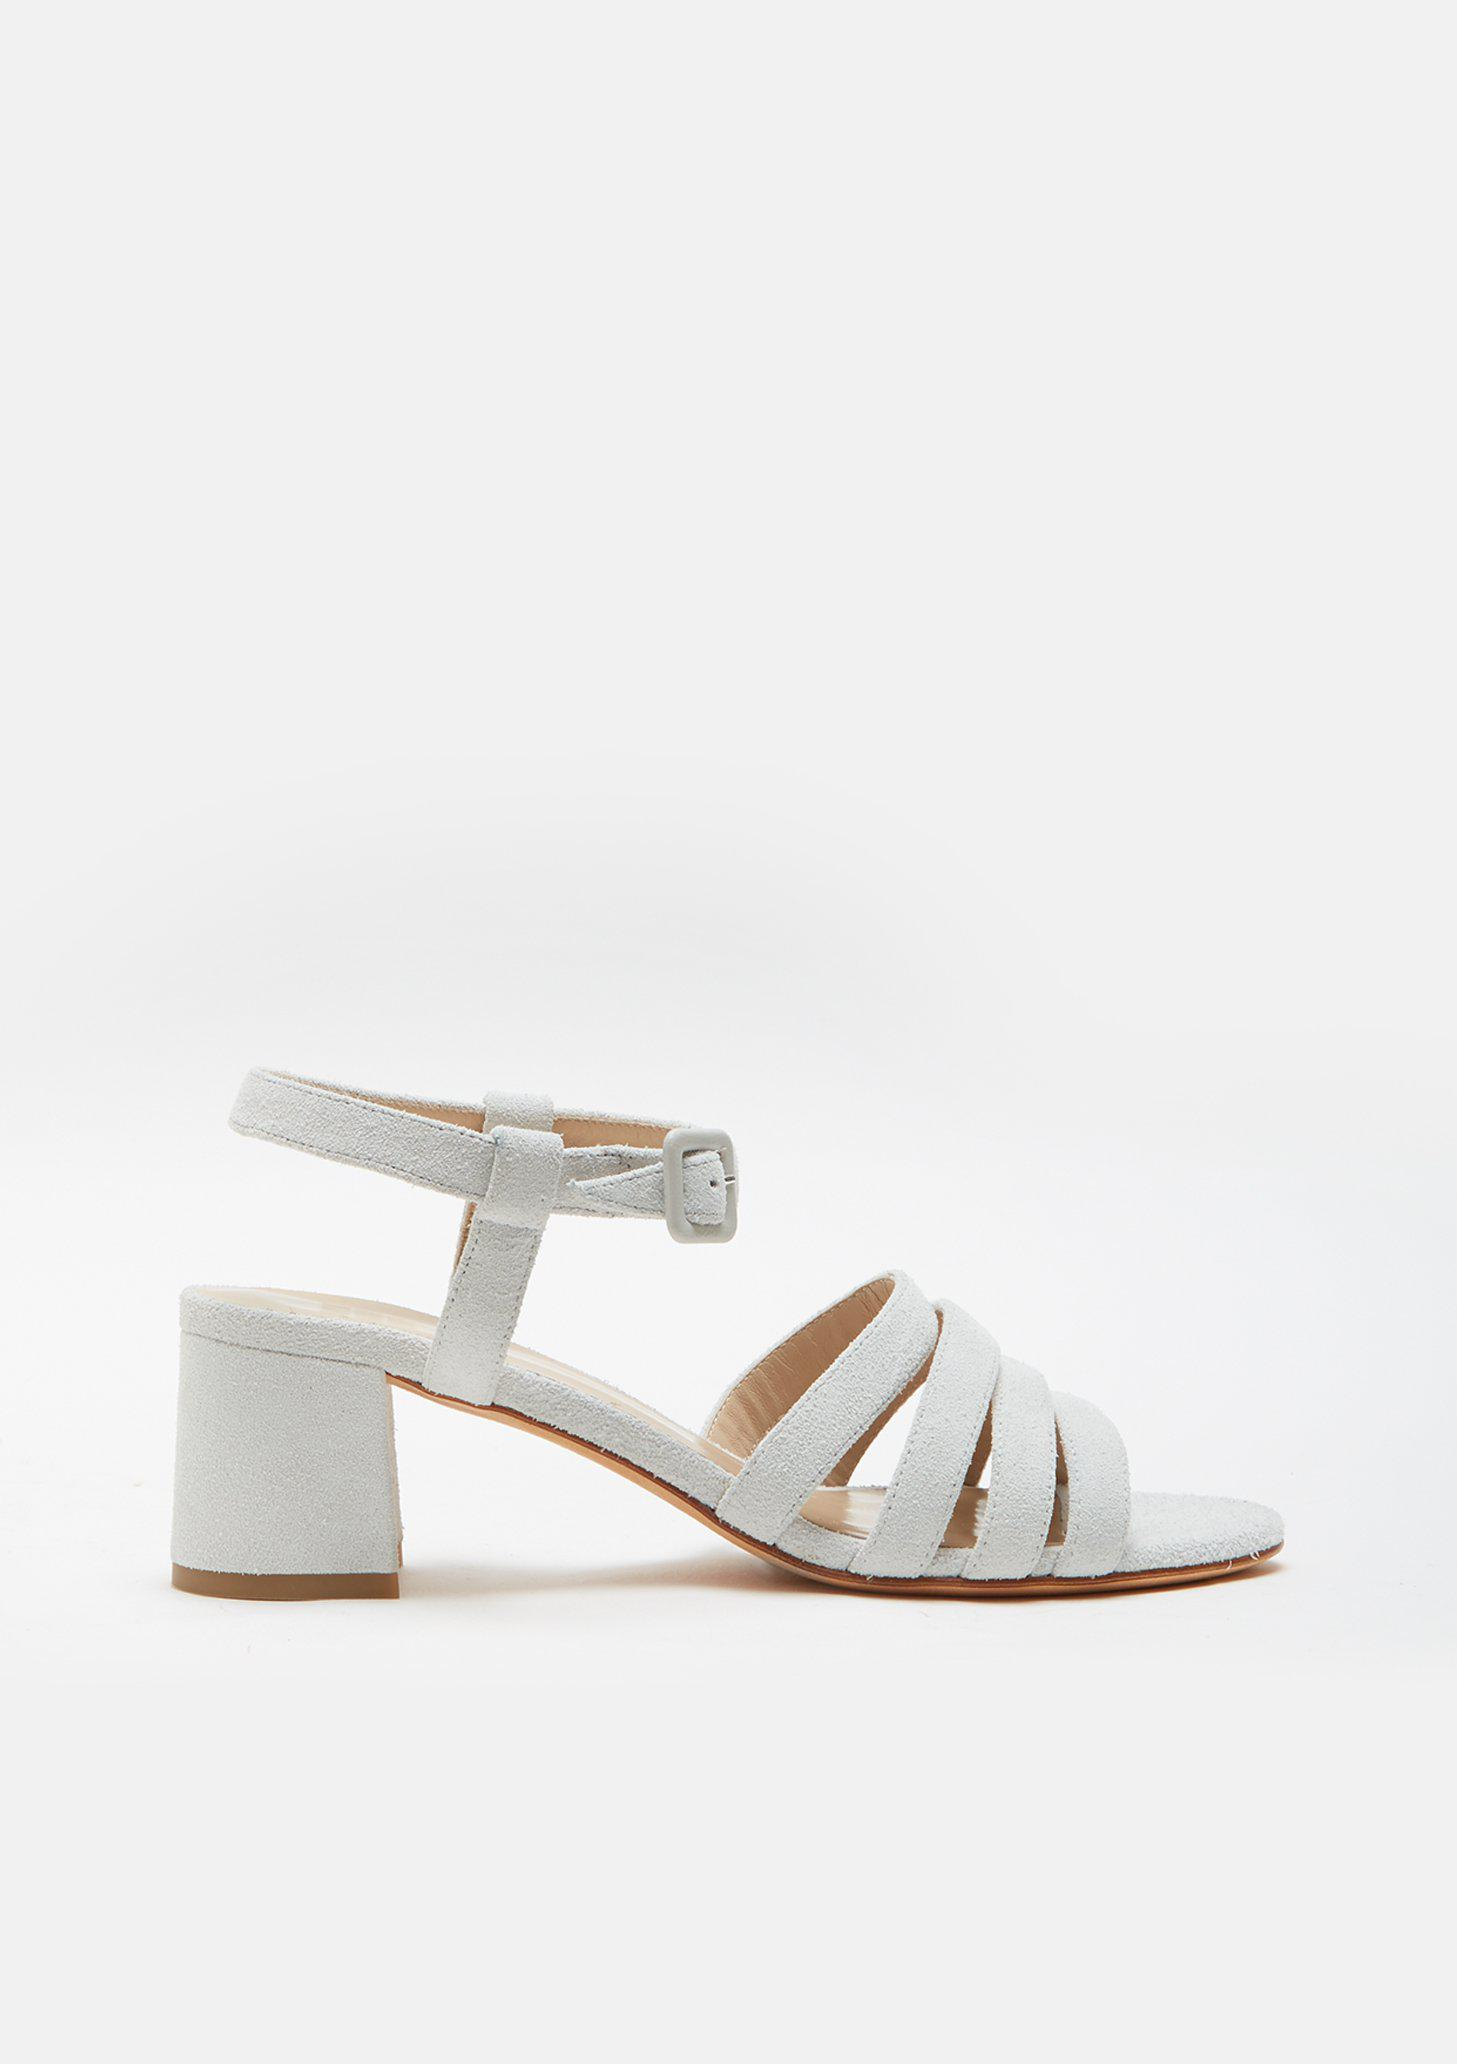 b985f59003d8 Lyst - Maryam Nassir Zadeh Palma Suede Sandal in White